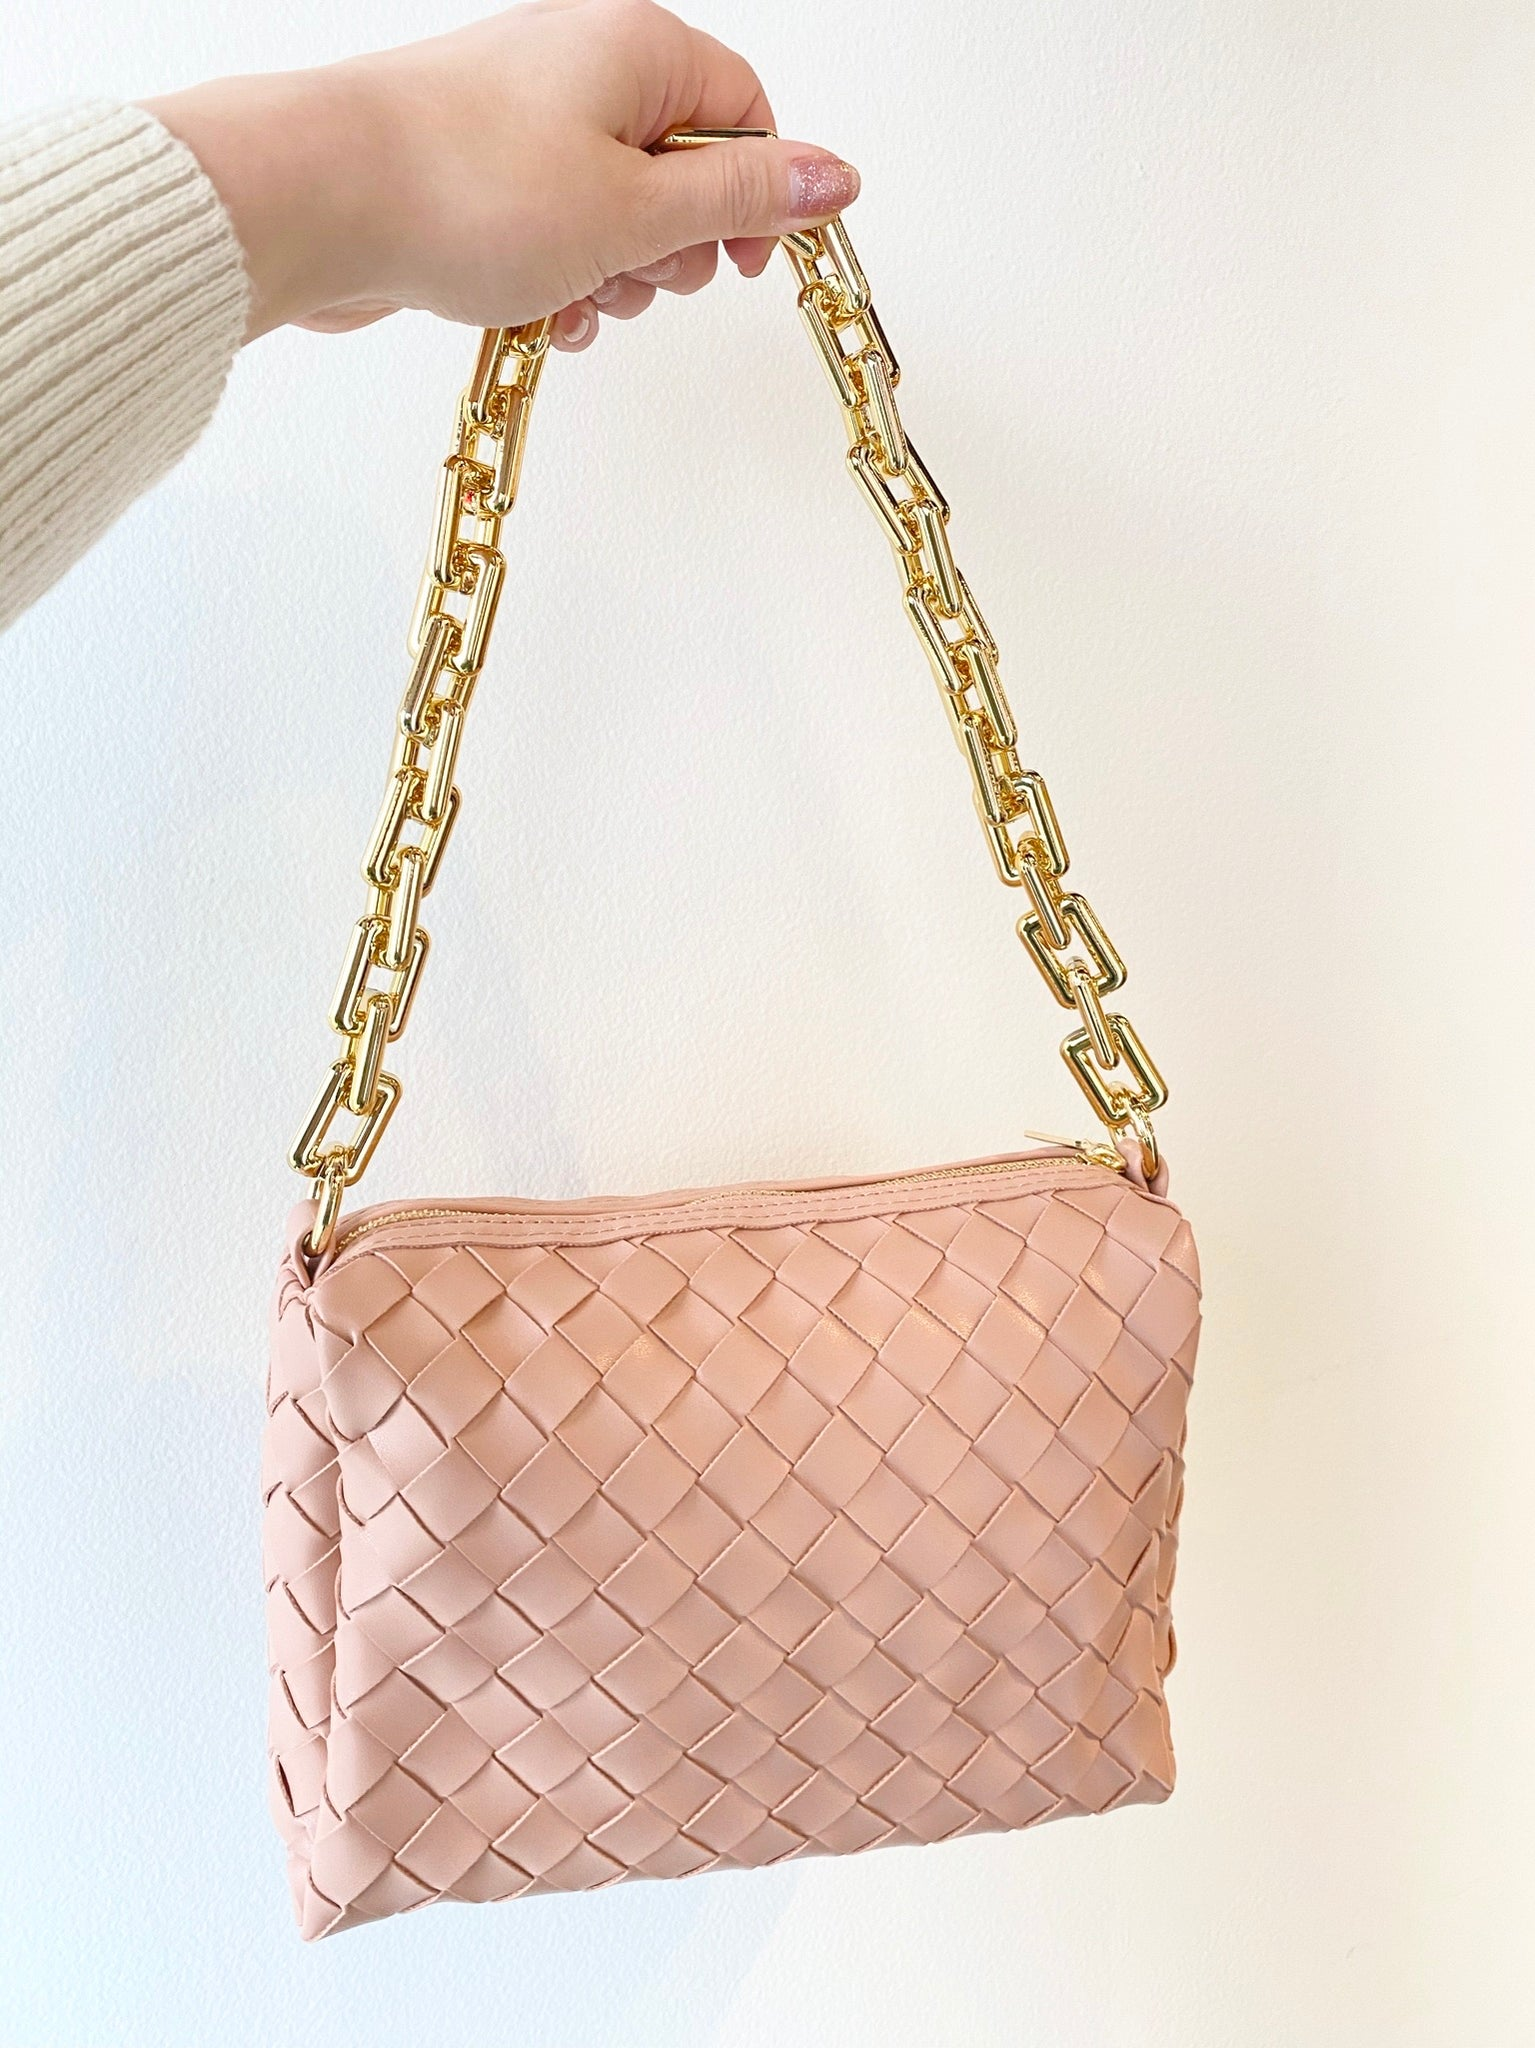 Brandi Braided Clutch